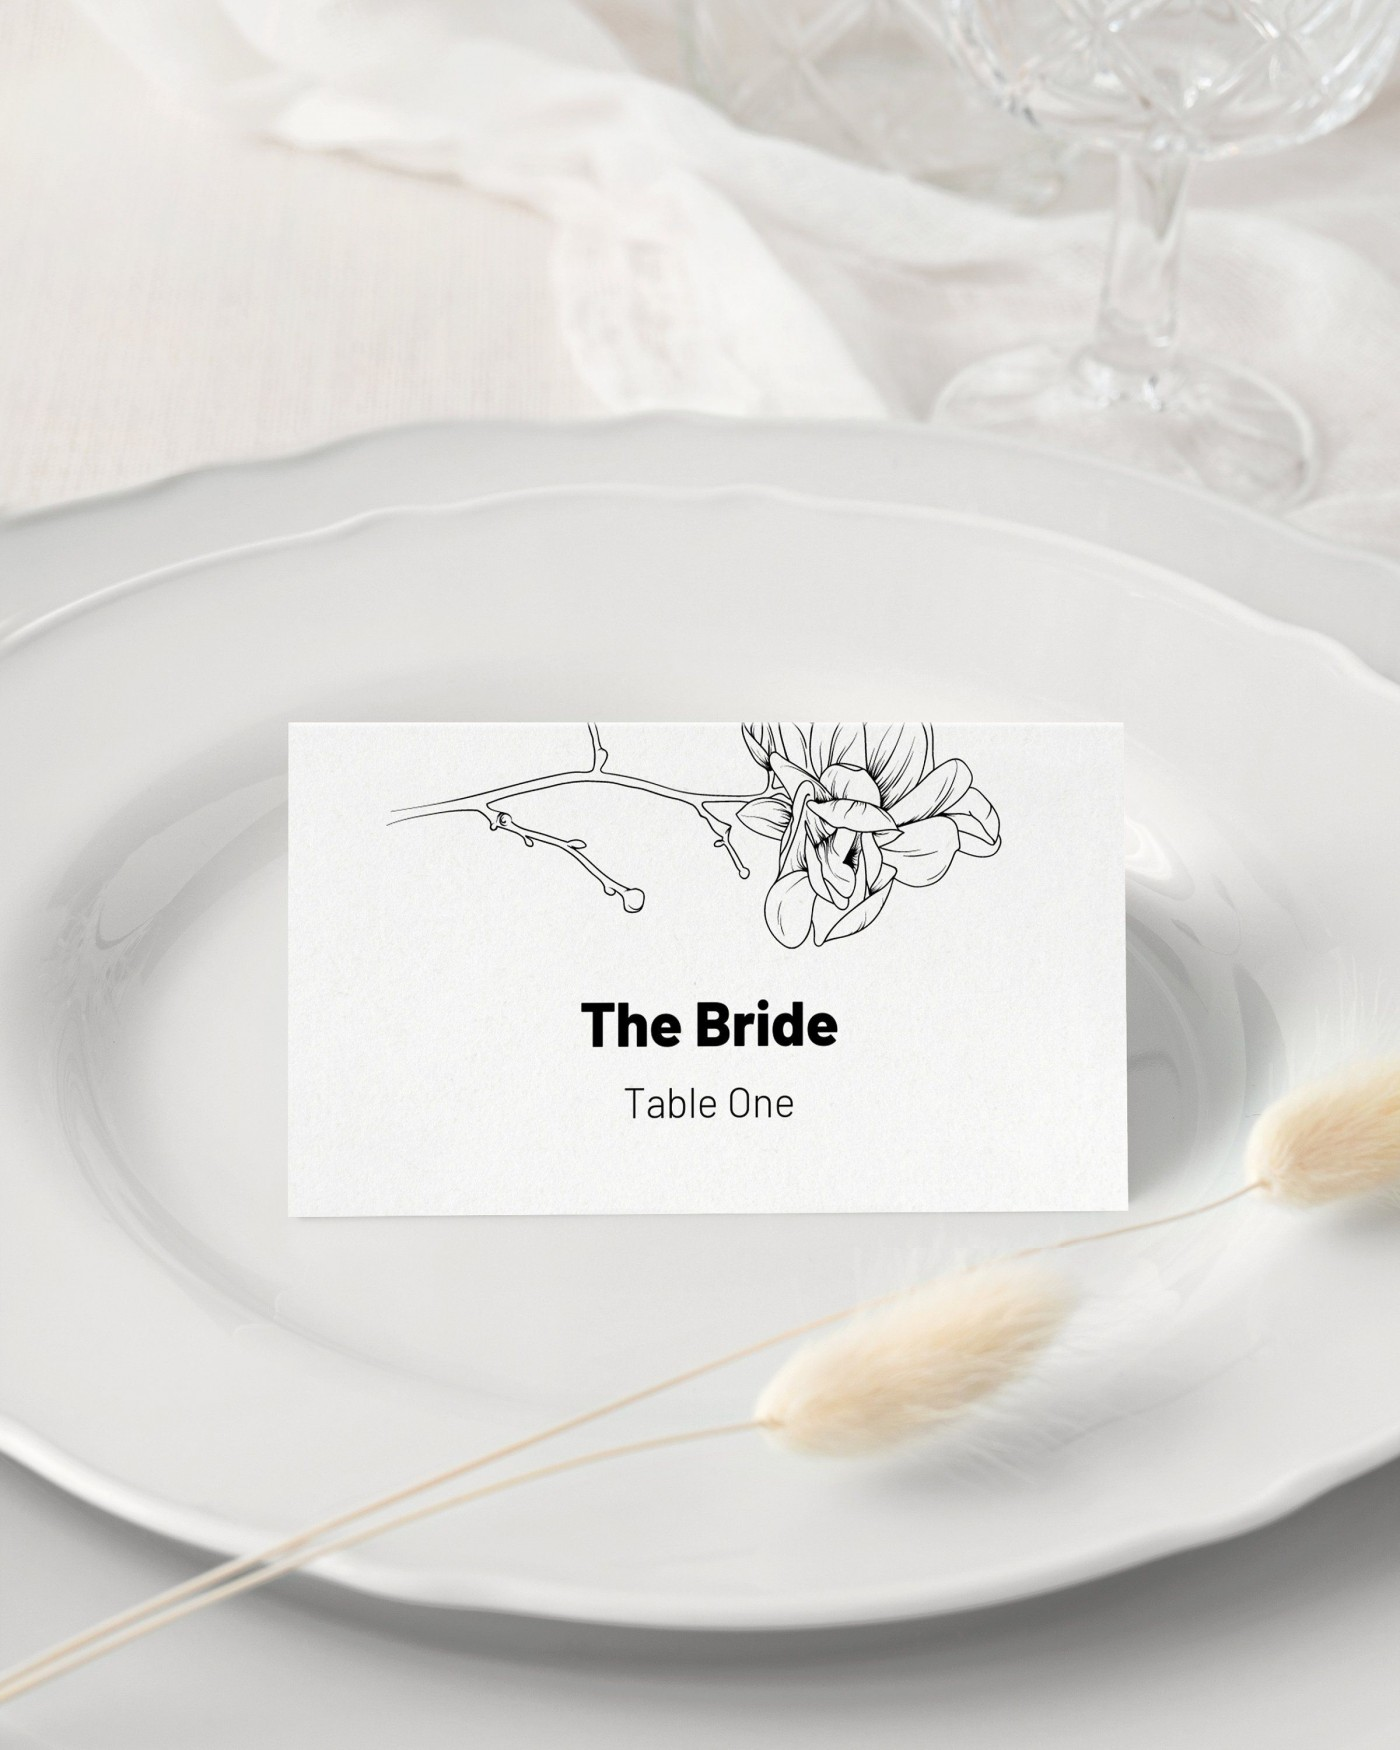 008 Unforgettable Wedding Name Card Template Picture  Free Download Design Sticker Format1400